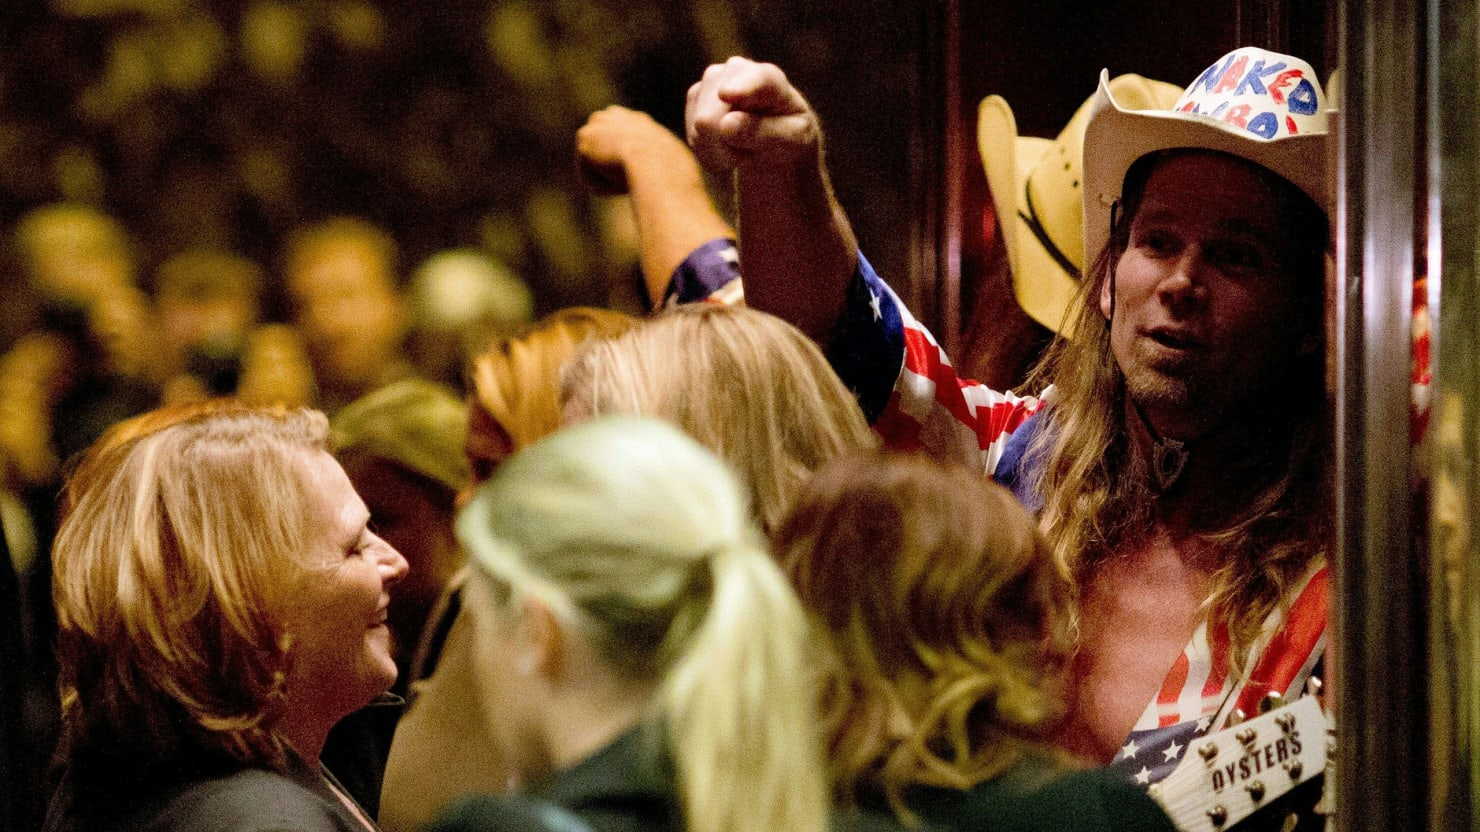 WATCH: Heitkamp comes face-to-face with Naked Cowboy on